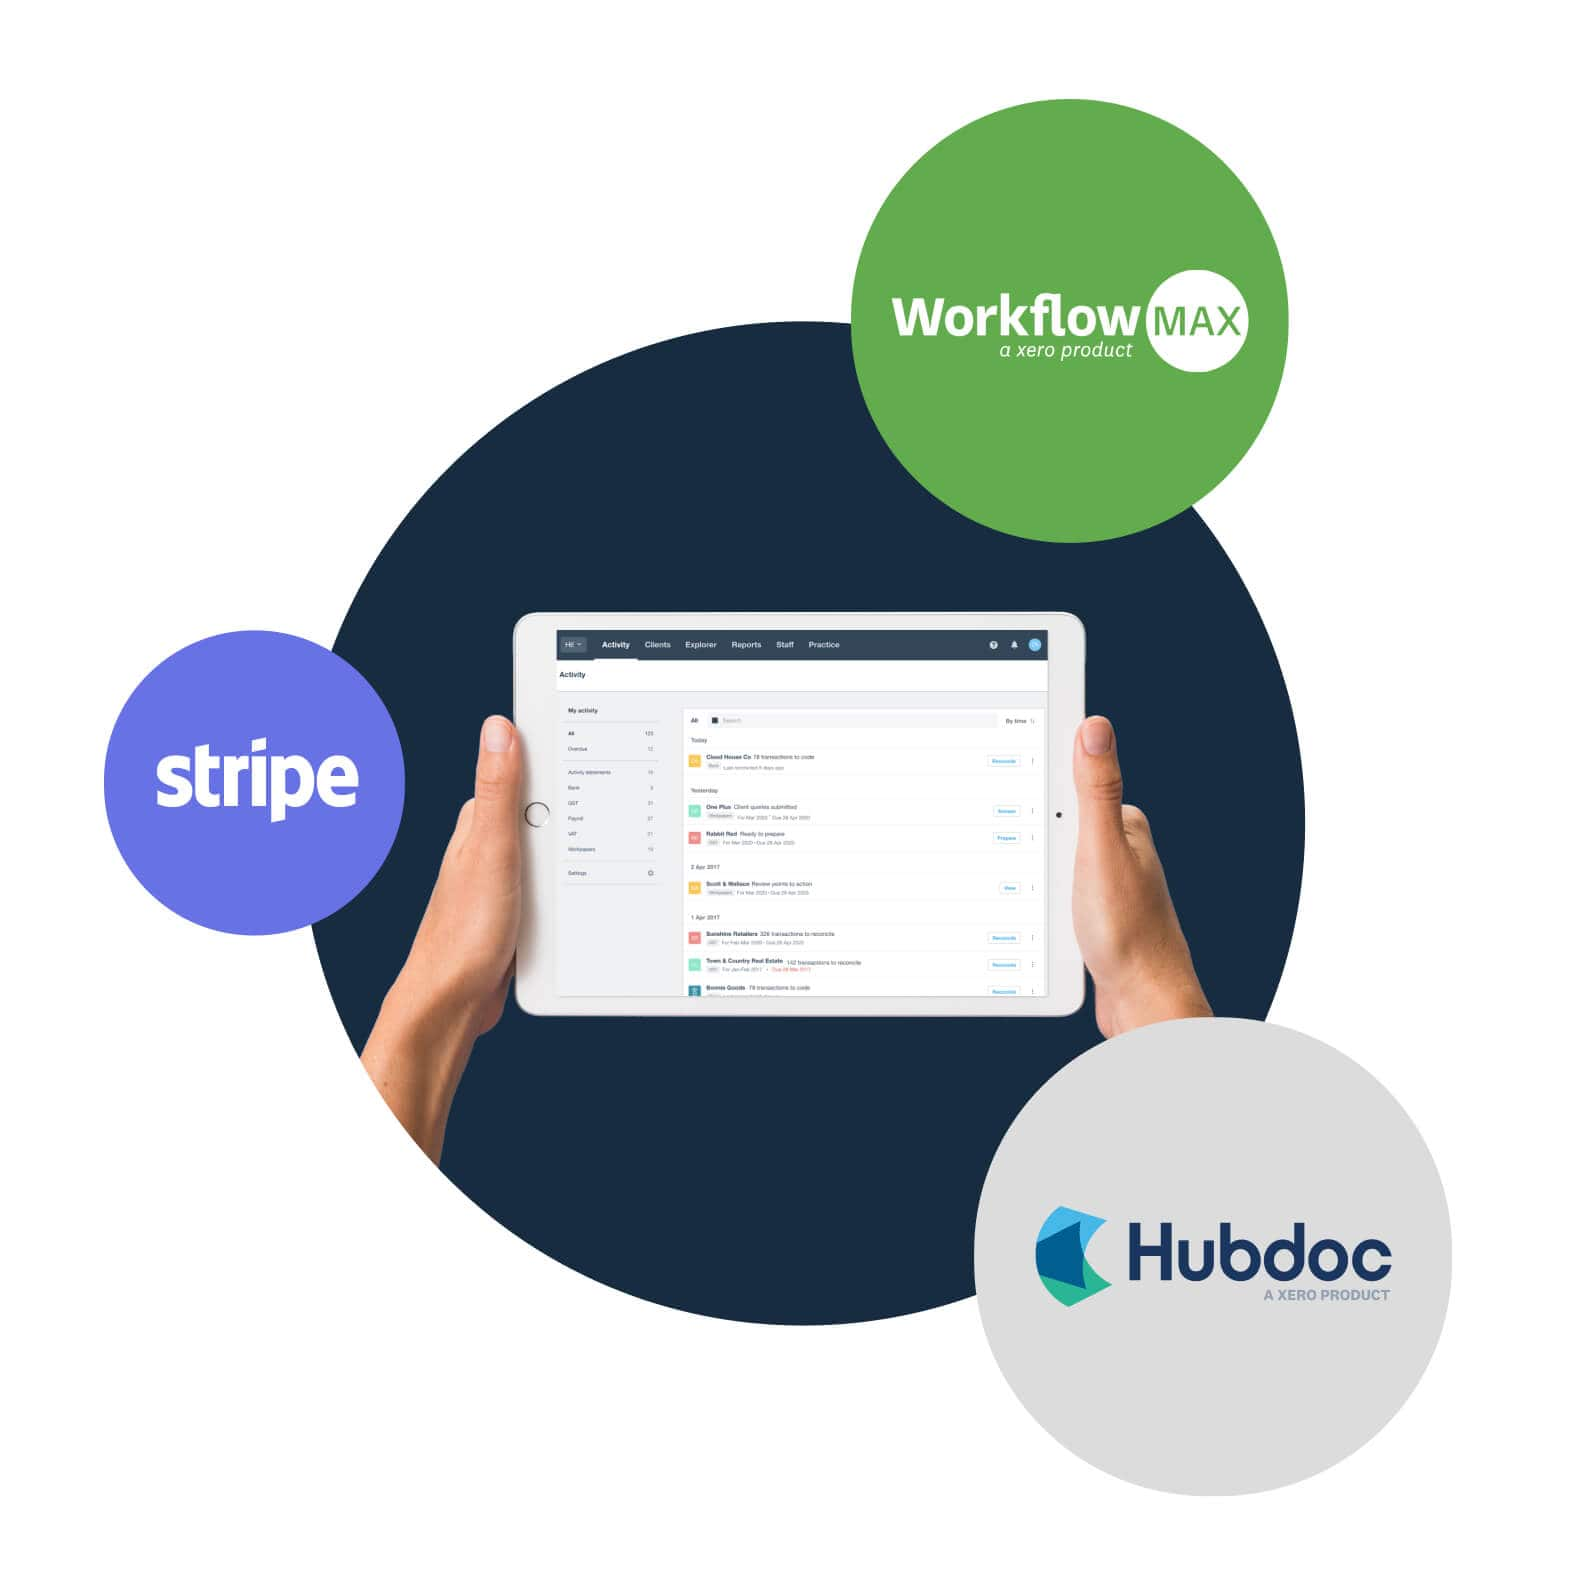 An accounting practice has connected Stripe, Hubdoc and WorkflowMax to XeroHQ.